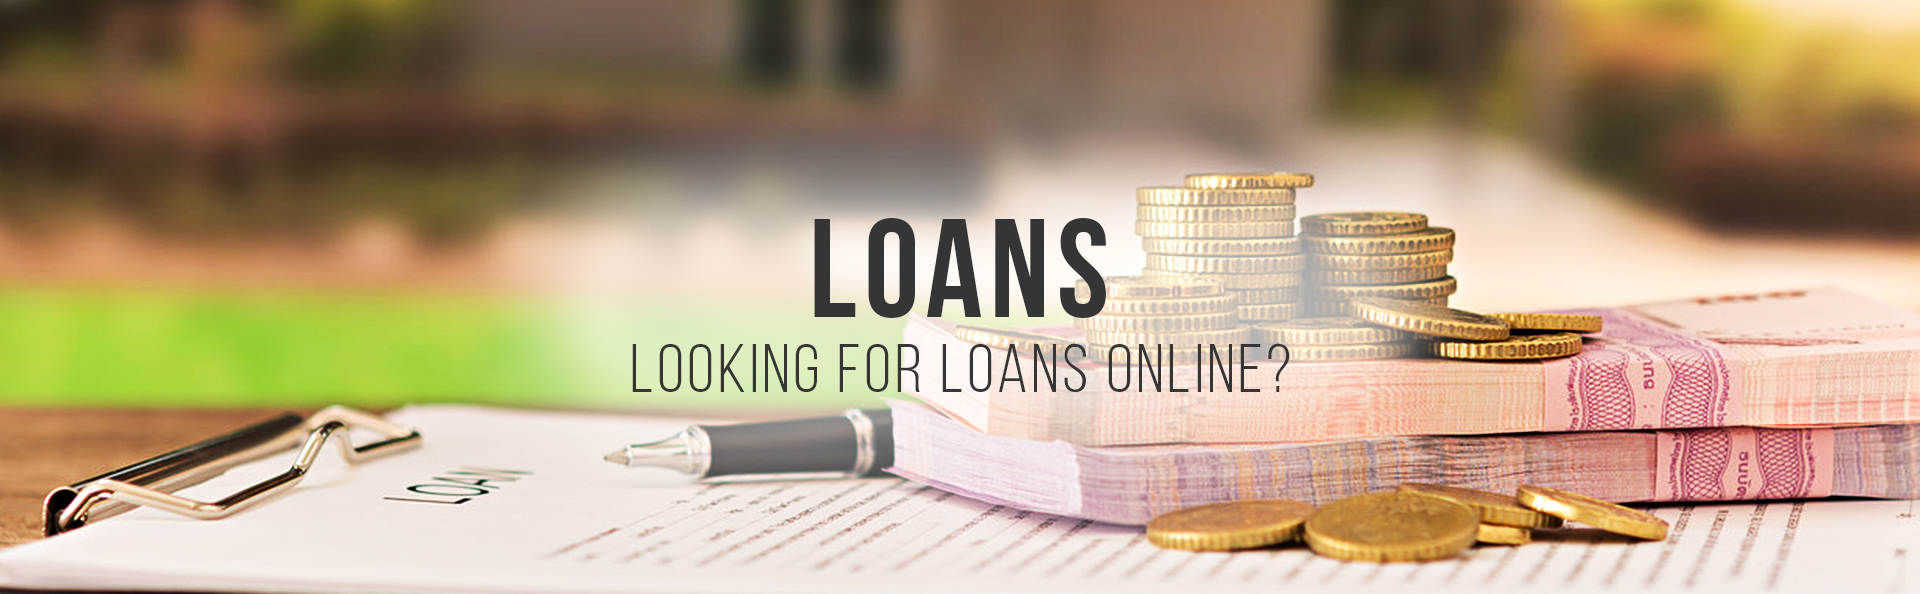 apply-for-loans-banner